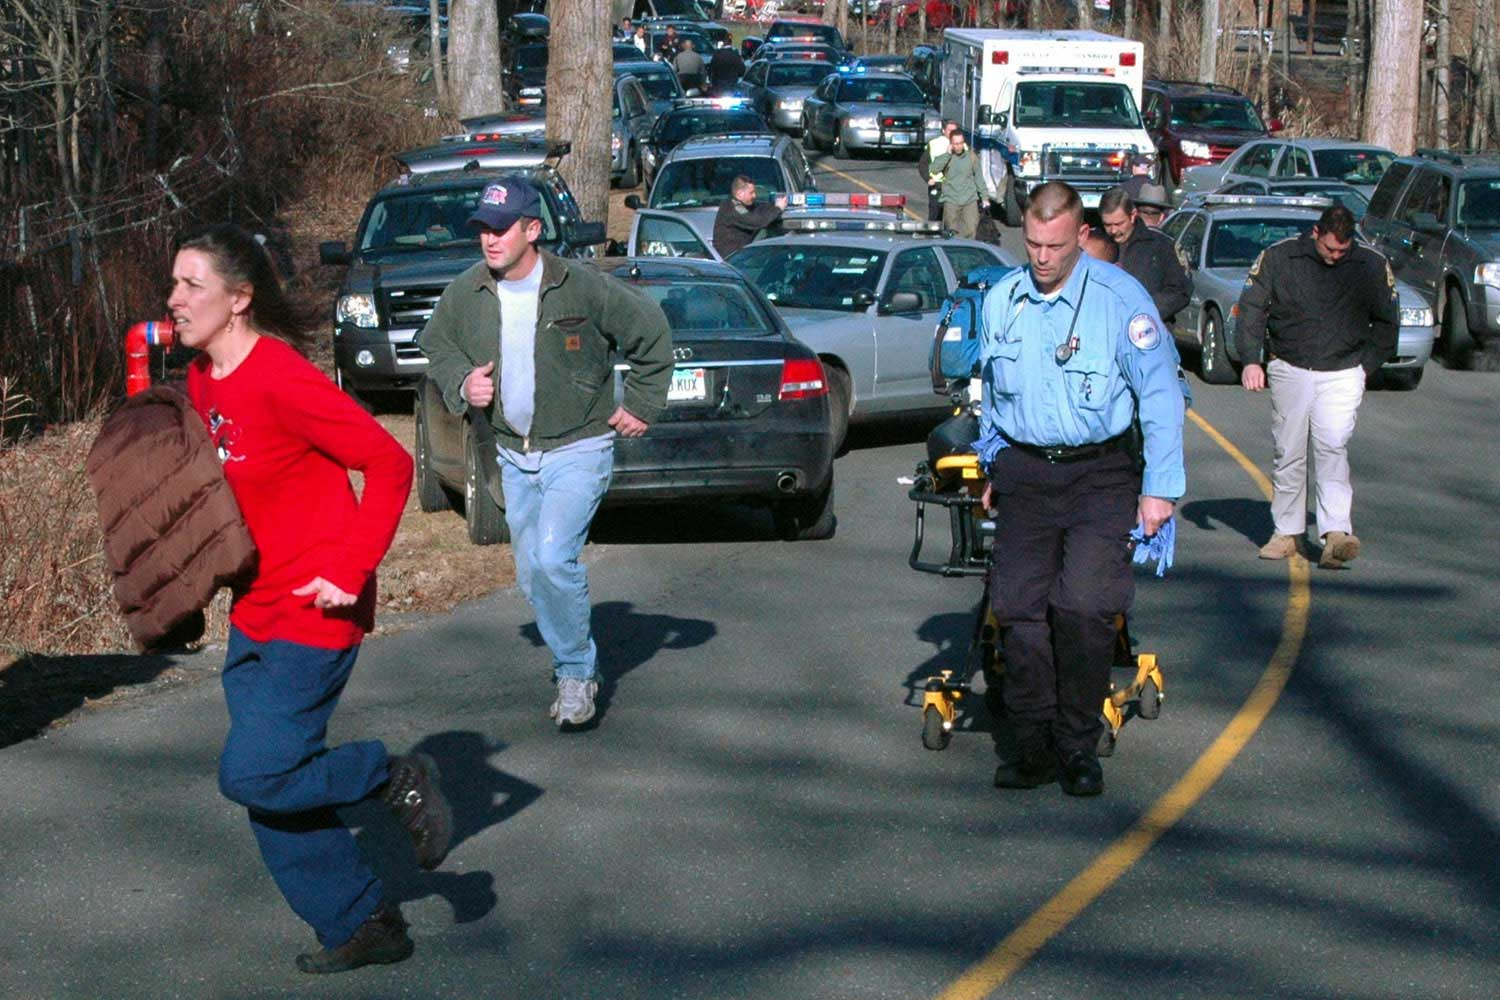 Paramedics and others rush toward Sandy Hook Elementary School in Newtown, Conn.